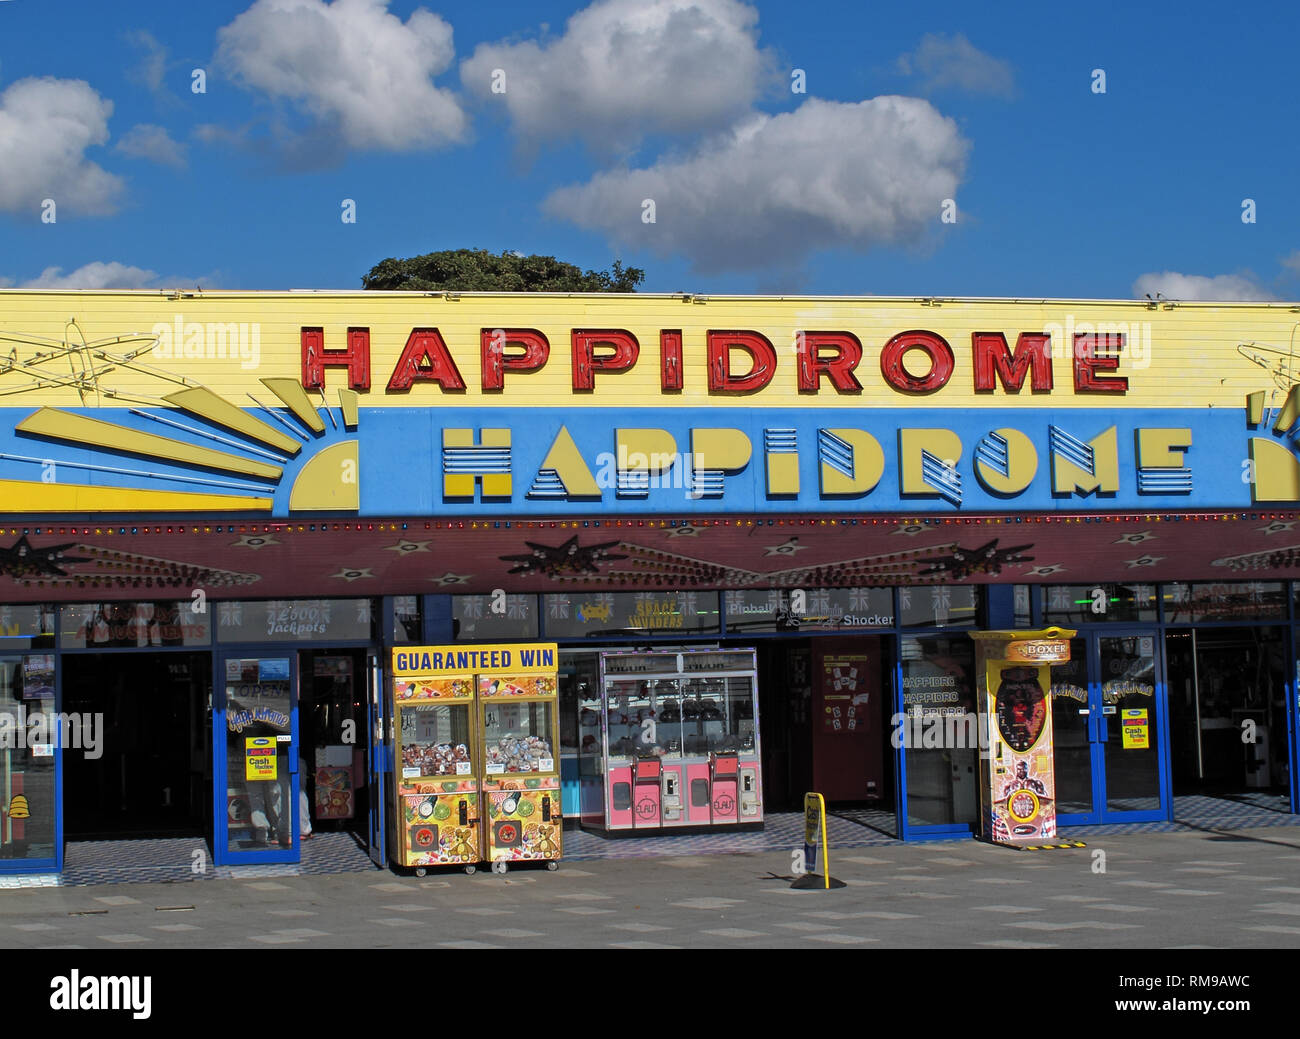 Southend Happidrome, amusement centre,Essex,South East England, UK - 52 Marine Parade, Southend-on-Sea SS1 2EN - Stock Image